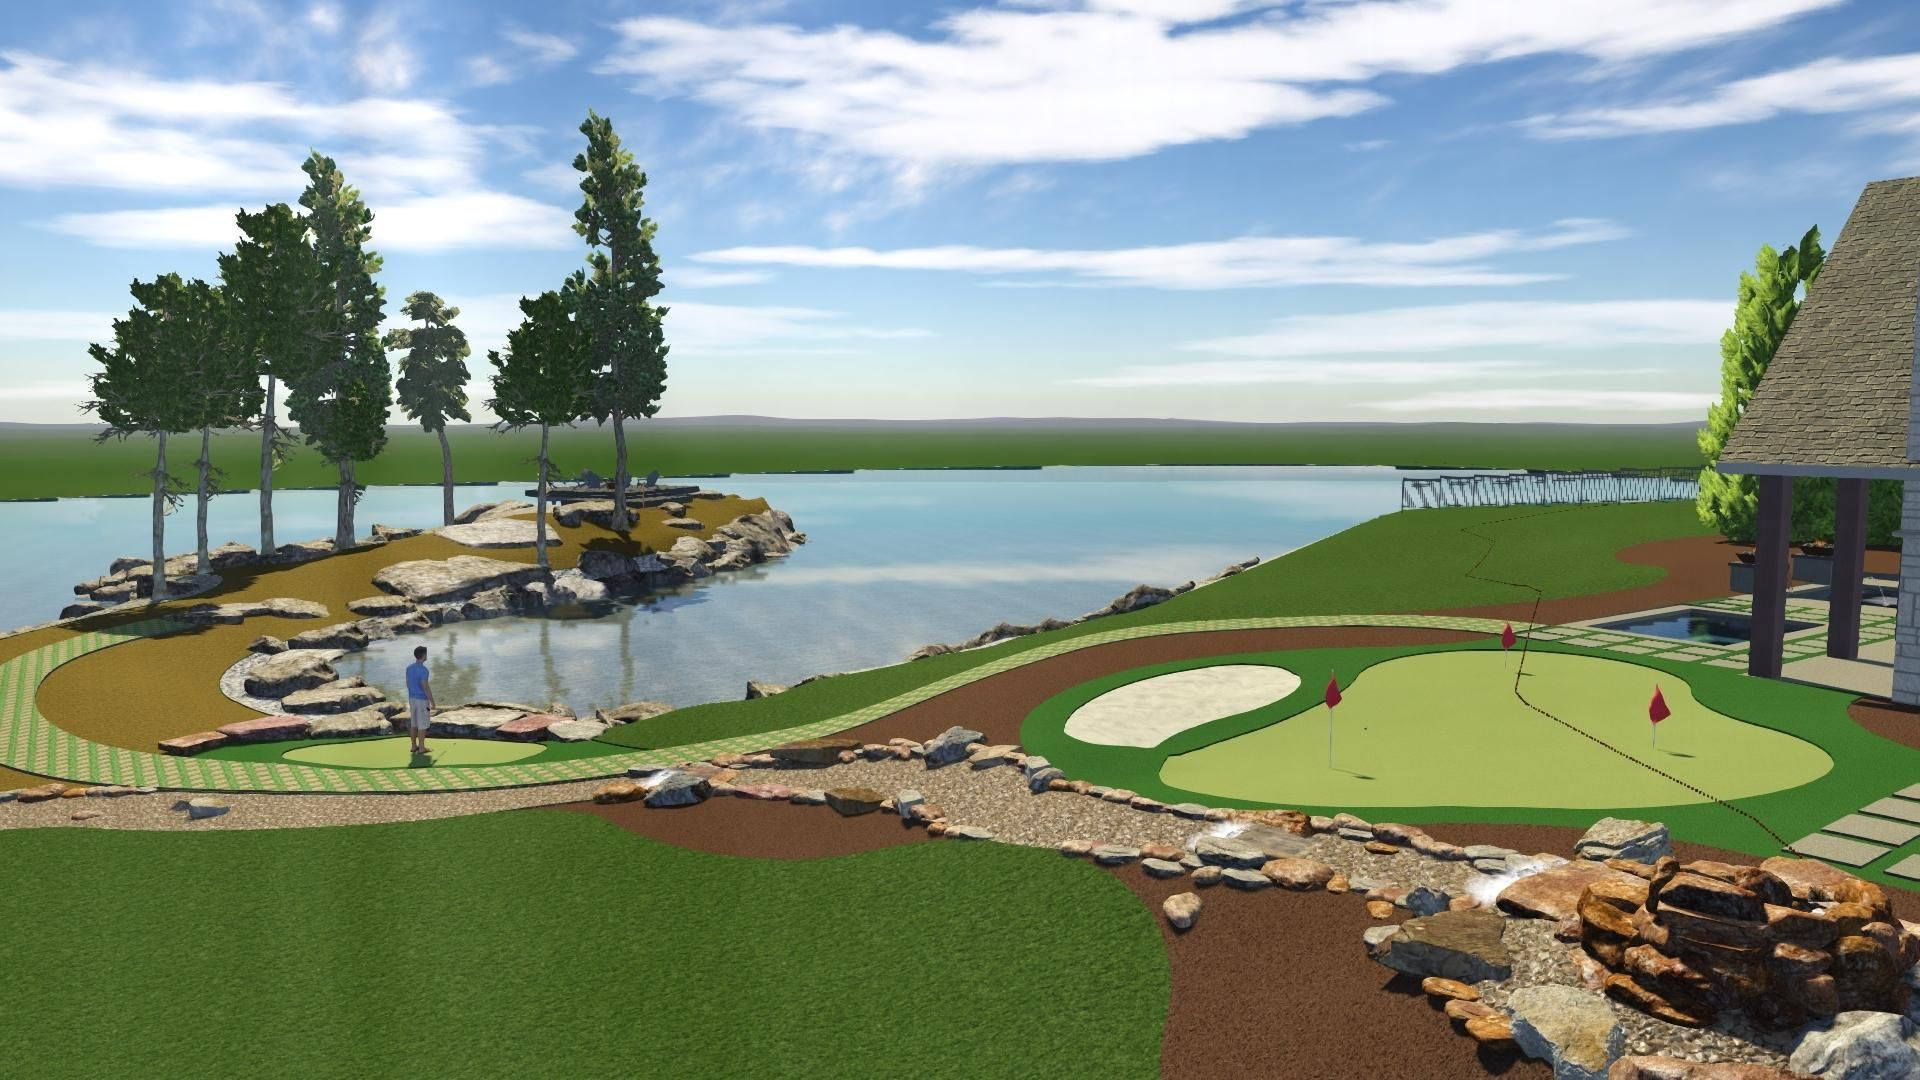 LAKE VIEW AND PUTTING GREEN